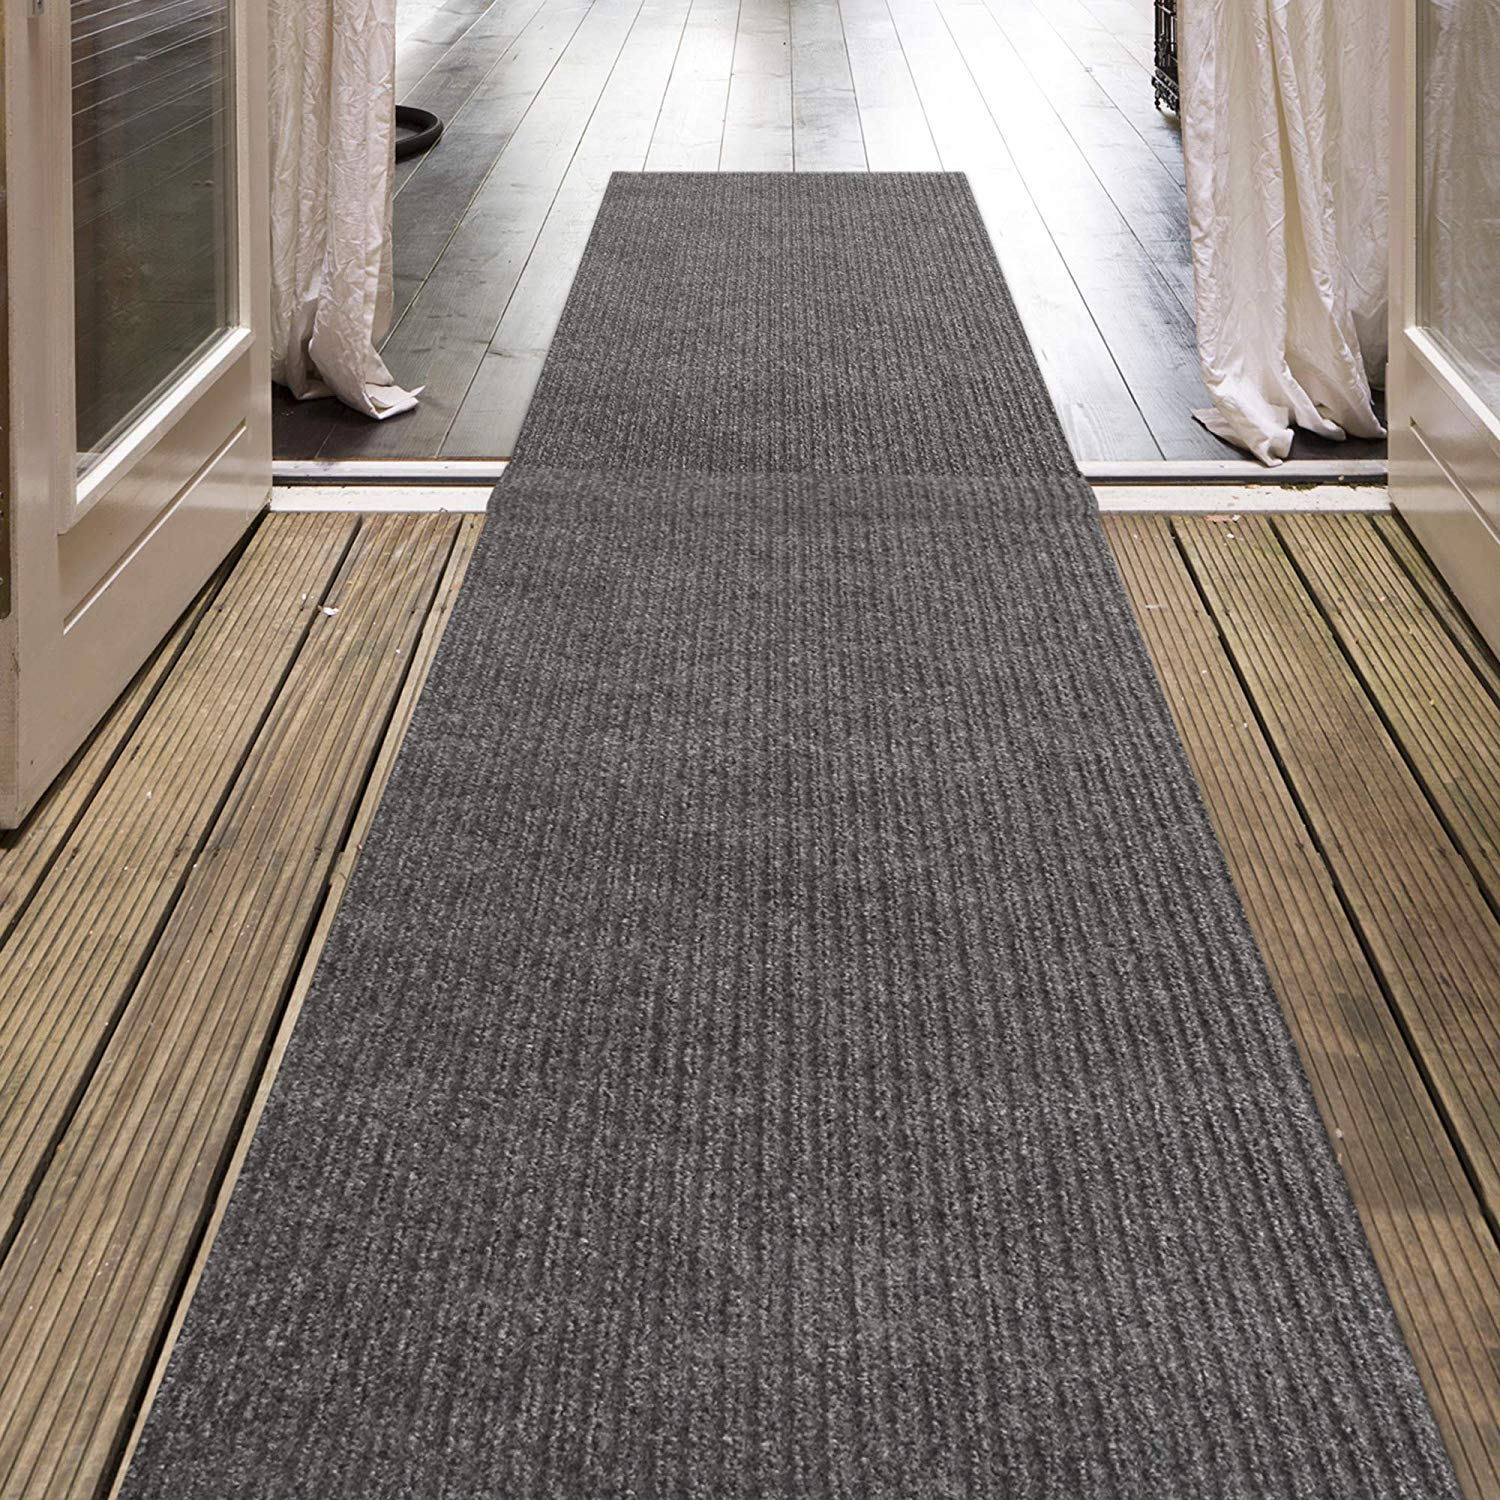 Icustomrug Indoor Outdoor Utility Ribbed Carpet Runner And Area Rugs In Grey Many